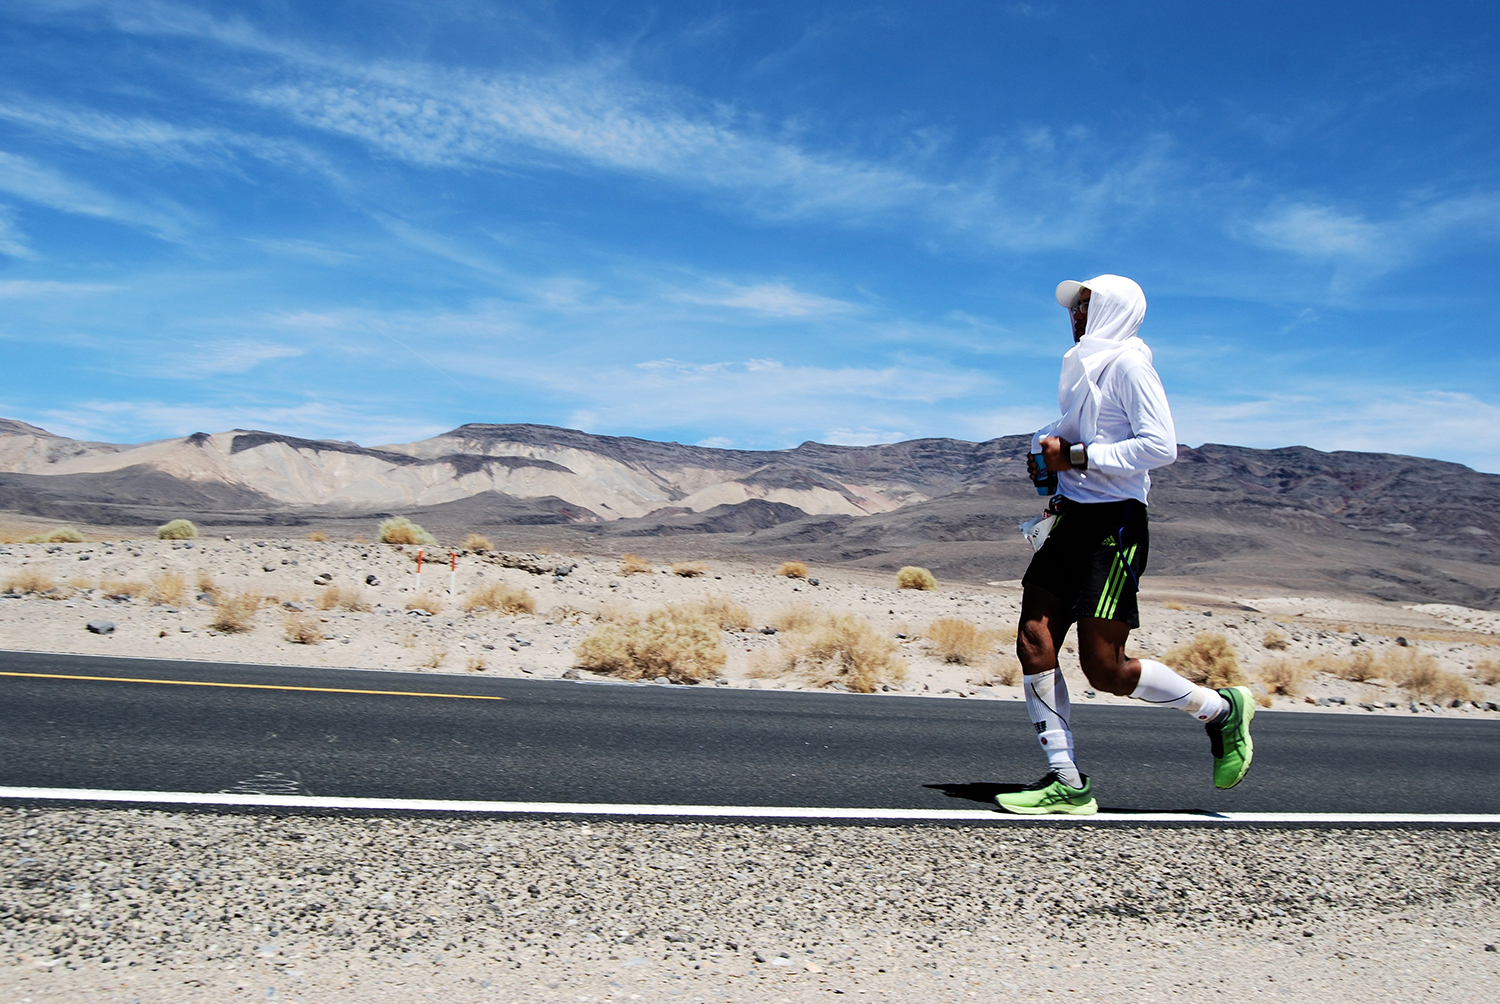 During the Badwater Ultramarathon in Death Valley, California, Ben Gaetos runs on the white line where it's not as hot.  (Photo courtesy of Ben Gaetos)